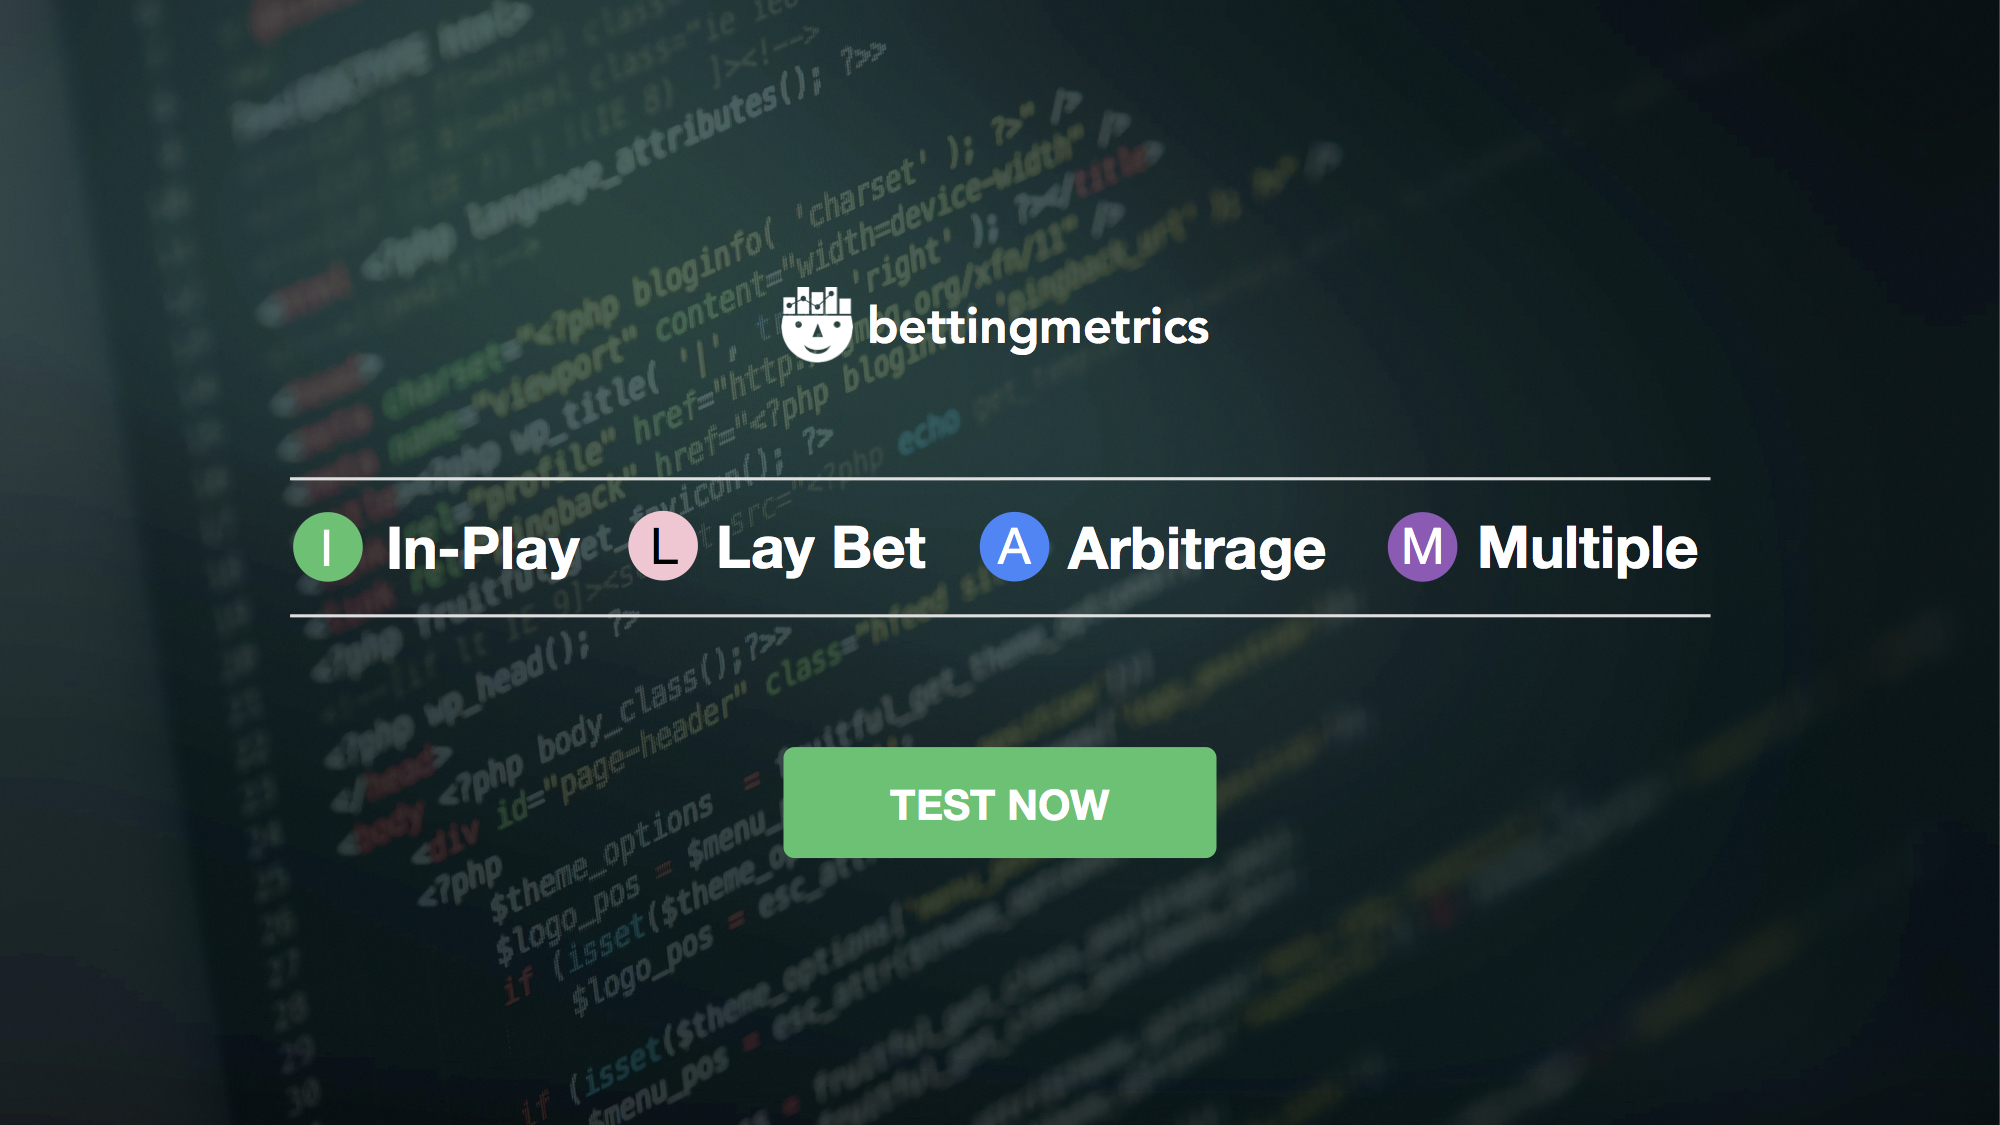 Bettingmetrics-bet-tracker-product-updates-Track-Multiple-Arbitrage-bets-and-share-your-betting-history